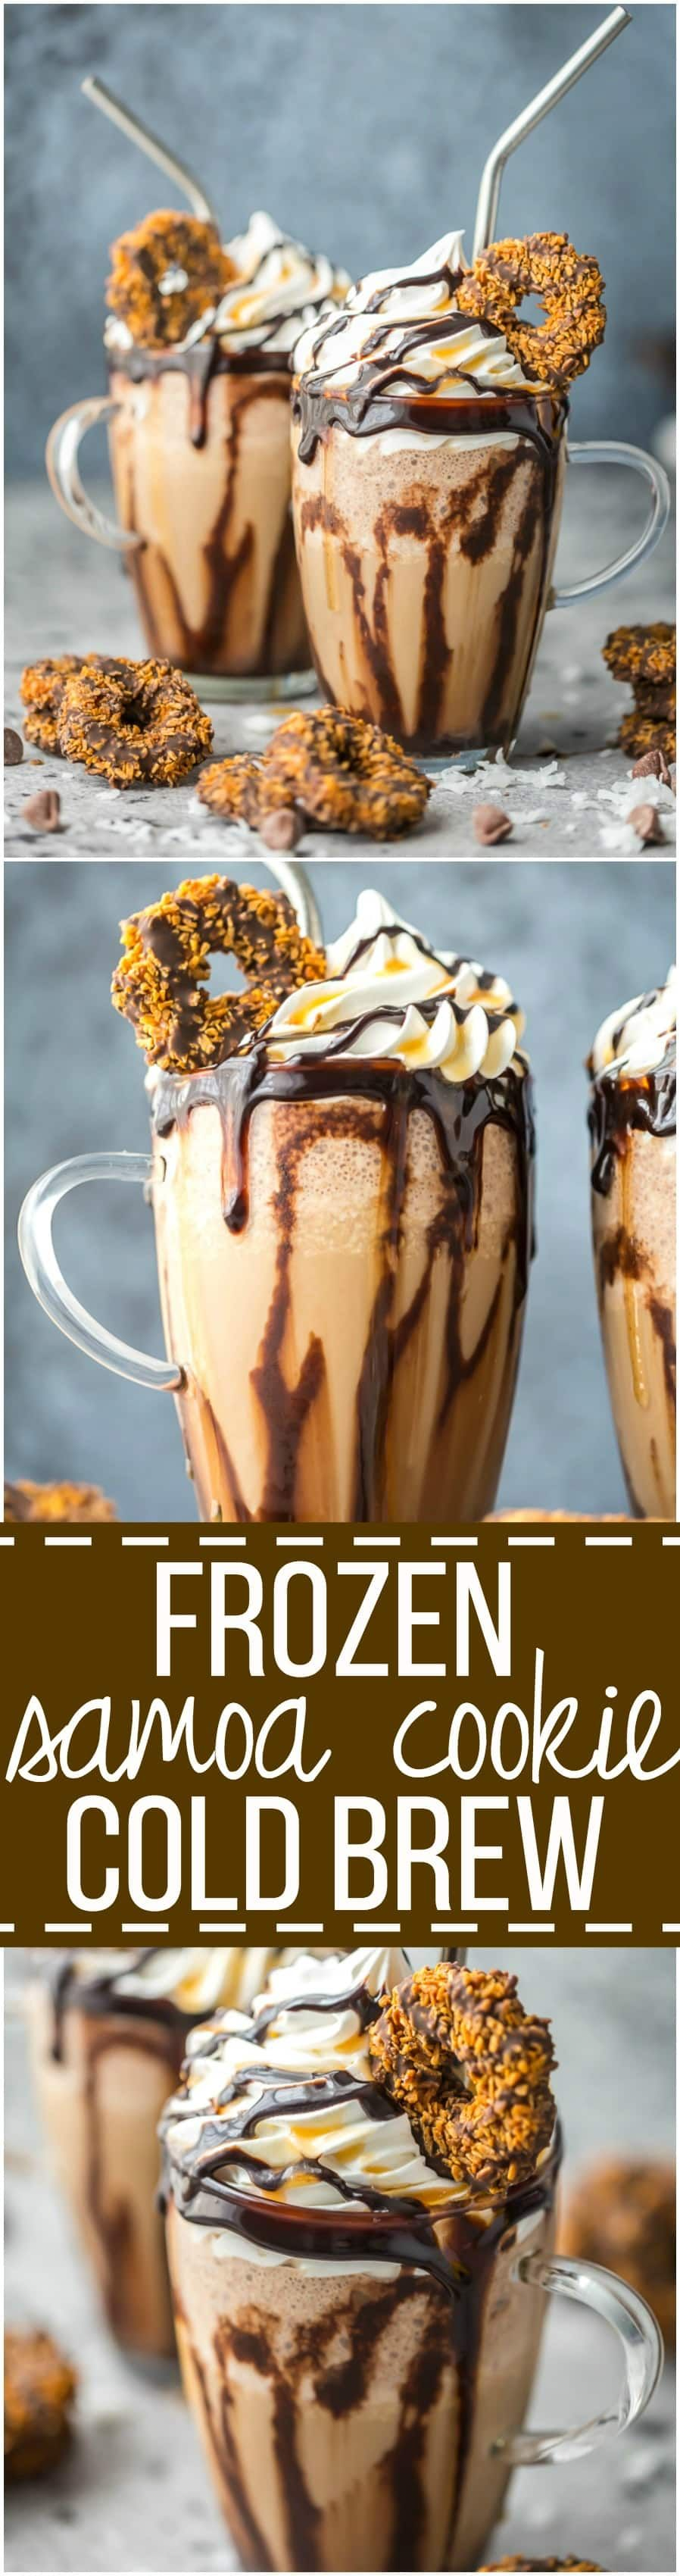 Frozen Caramel Coconut Cold Brew Coffee